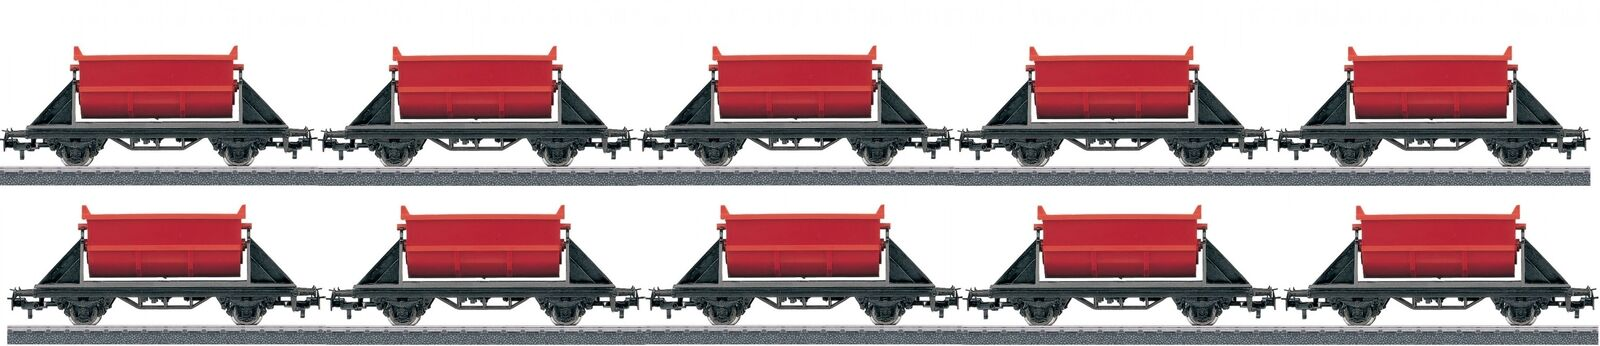 10 Trix h0 Tipping Wagon From Starter Set 21523